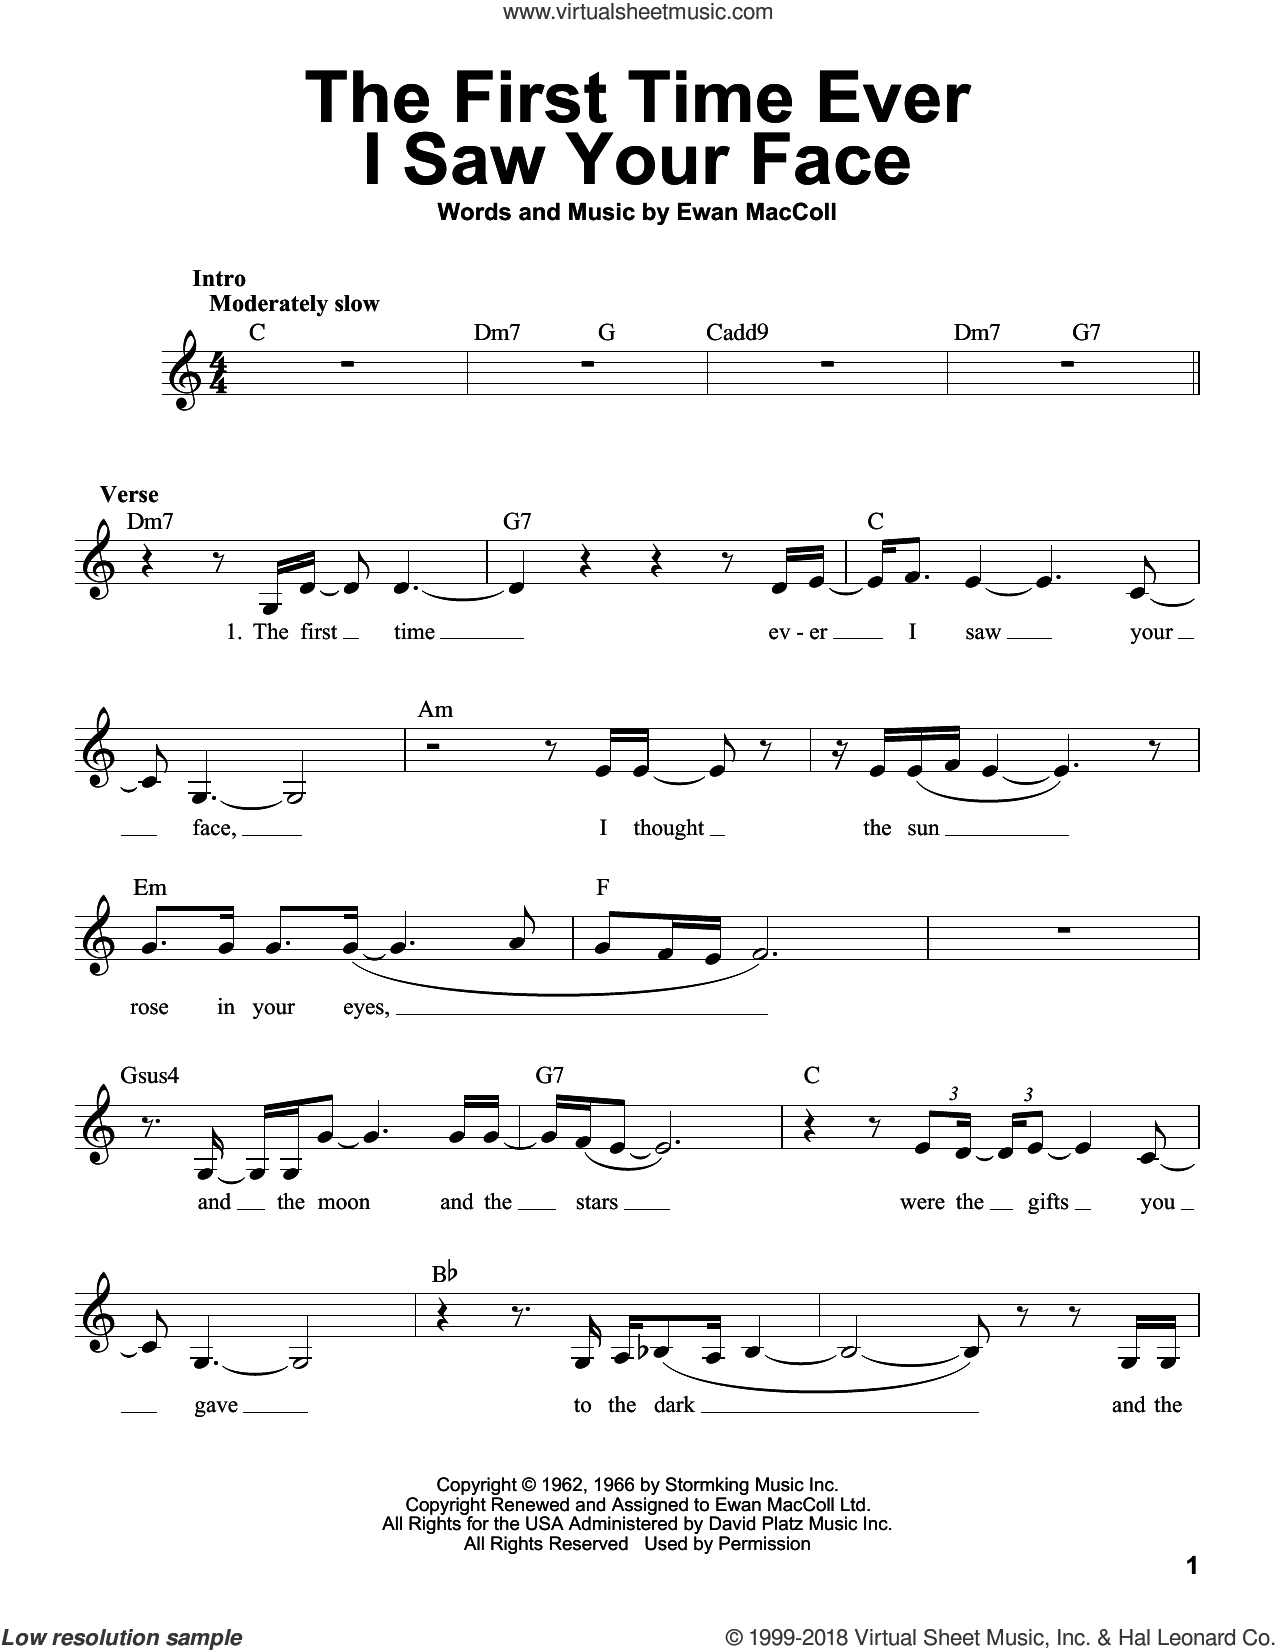 The First Time Ever I Saw Your Face sheet music for voice solo by Roberta Flack and Ewan MacColl, intermediate skill level